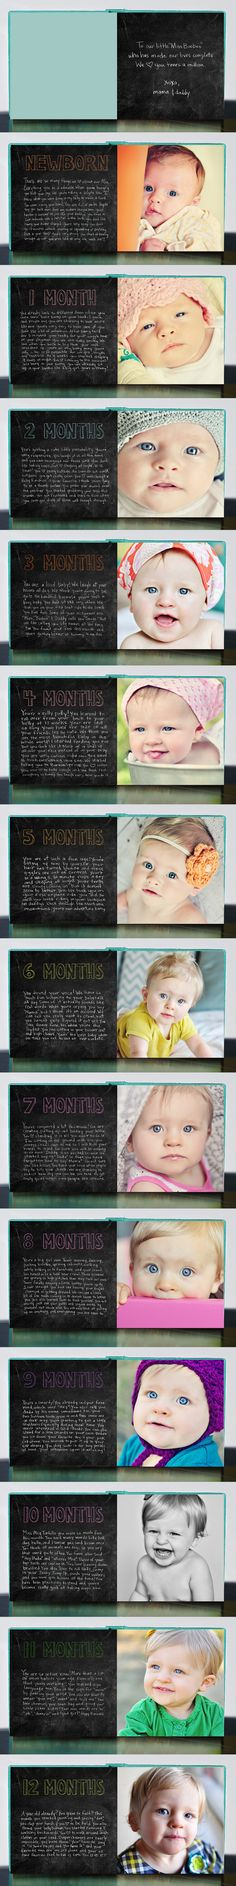 month by month baby book  love love love